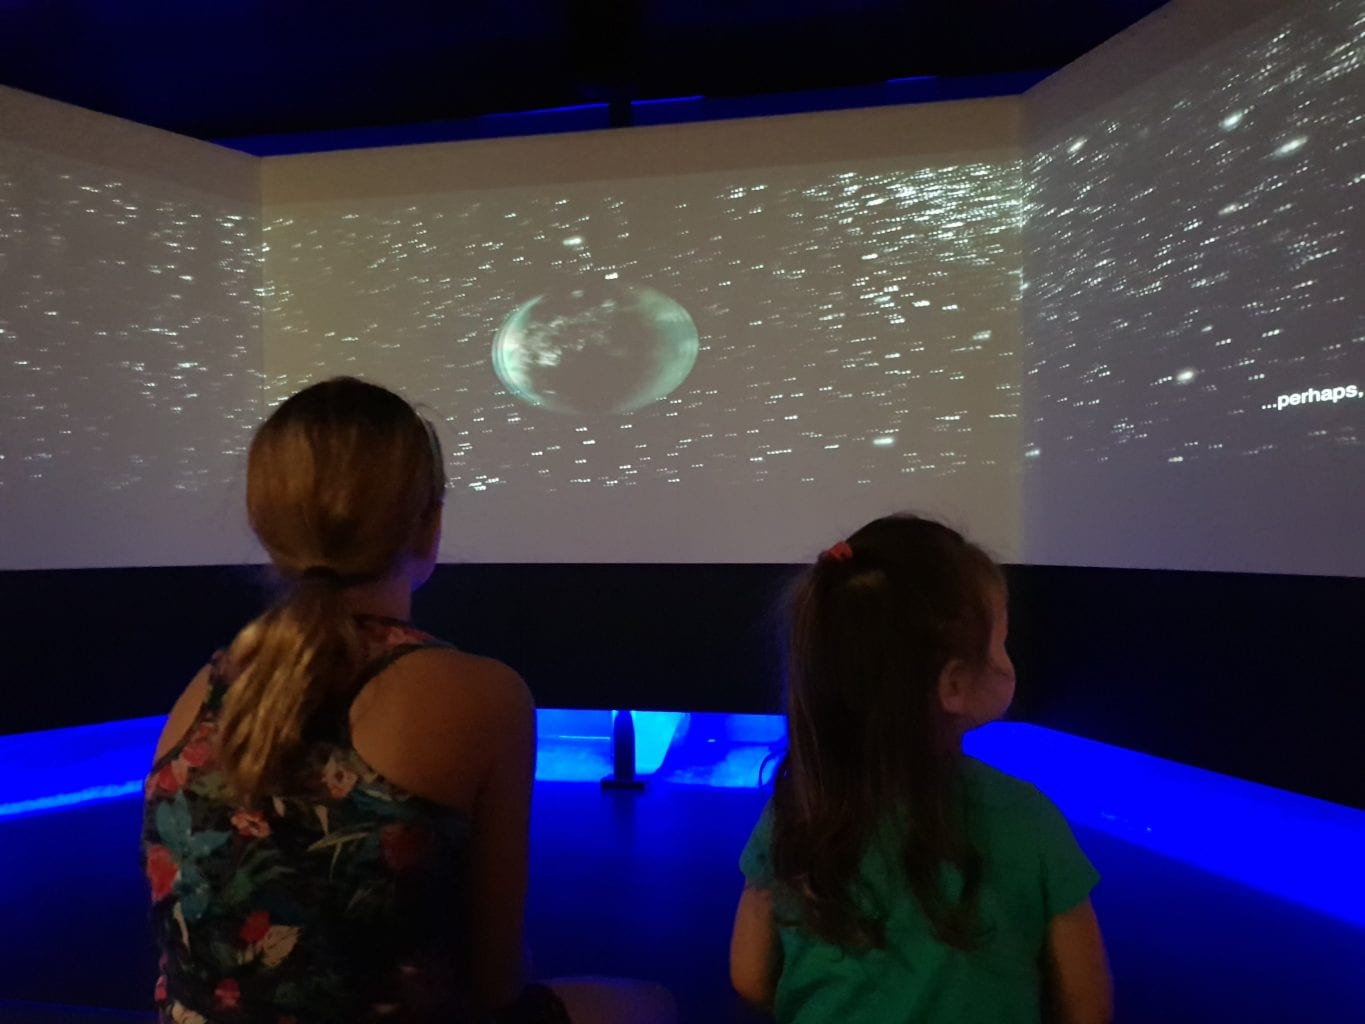 Amazing hands-on learning a the Astronomy Center at the Royal Observatory Greenwich